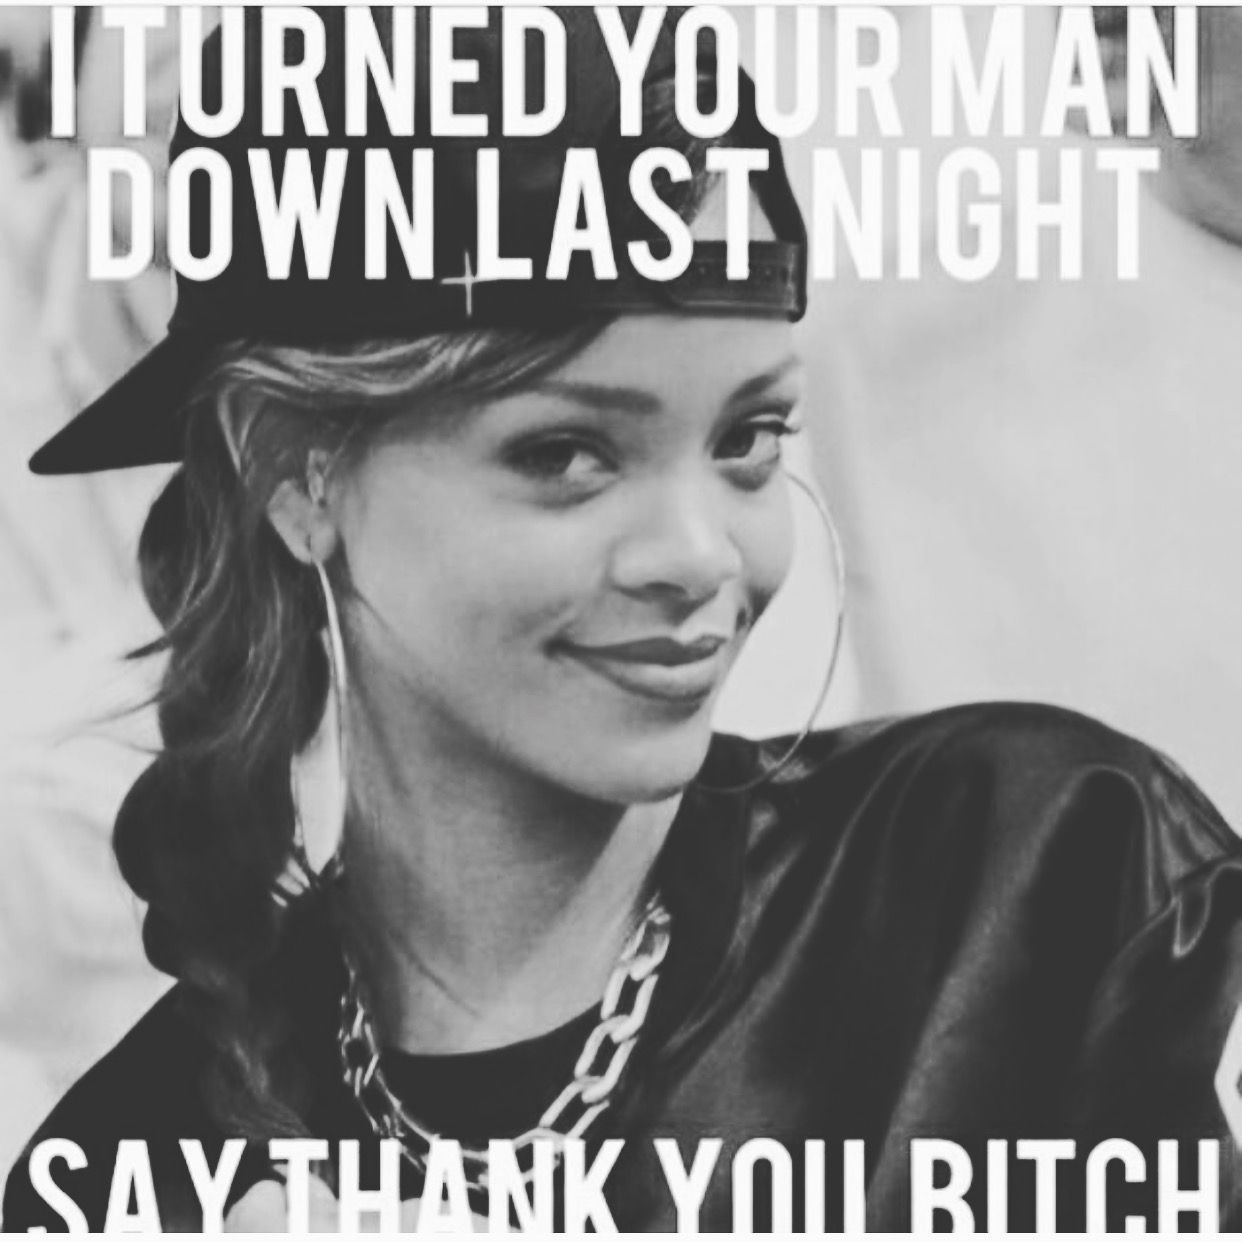 Pin by Diego on Quotes   Rihanna quotes, Boy bye quotes ...